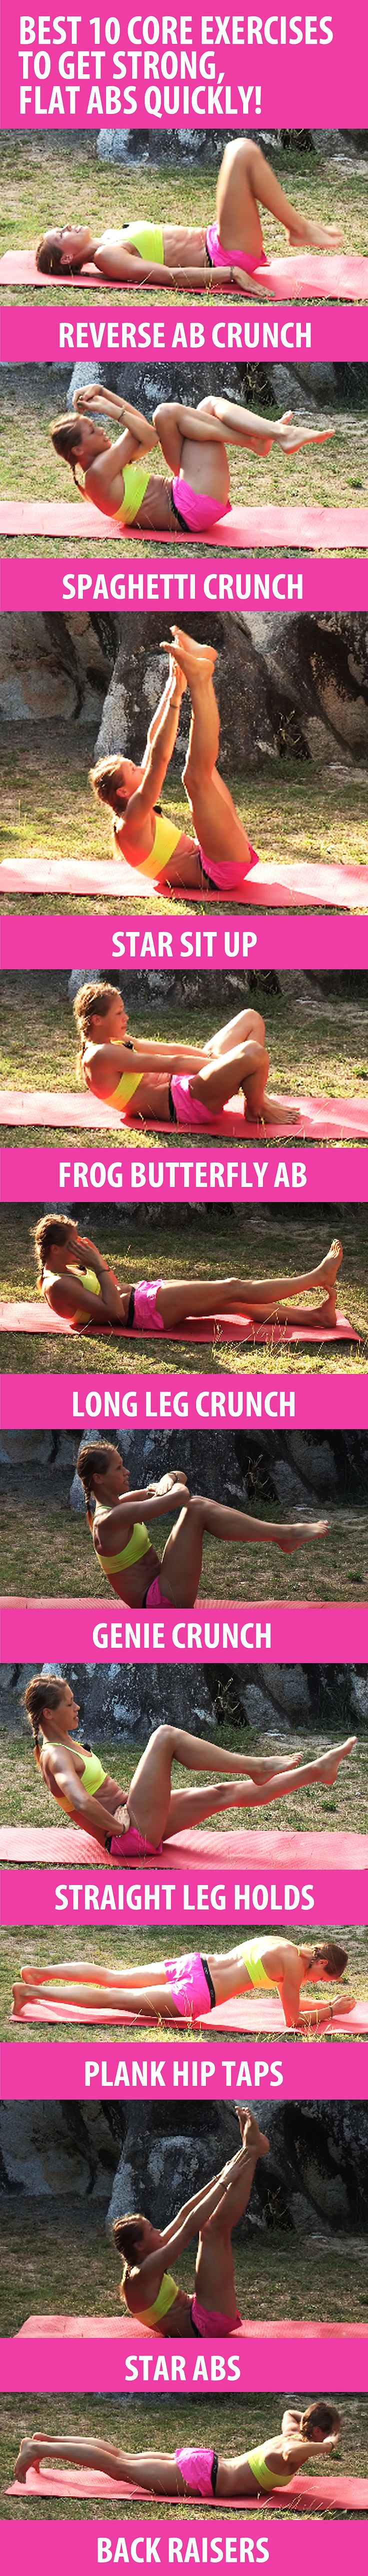 These 10 core exercises will help you sculpt six-pack abs, build core strength, and get rid of belly fat quickly. Recommended reps: BEGINNERS 8-10, INTERMEDIATE 10-15, ADVANCED 20-30